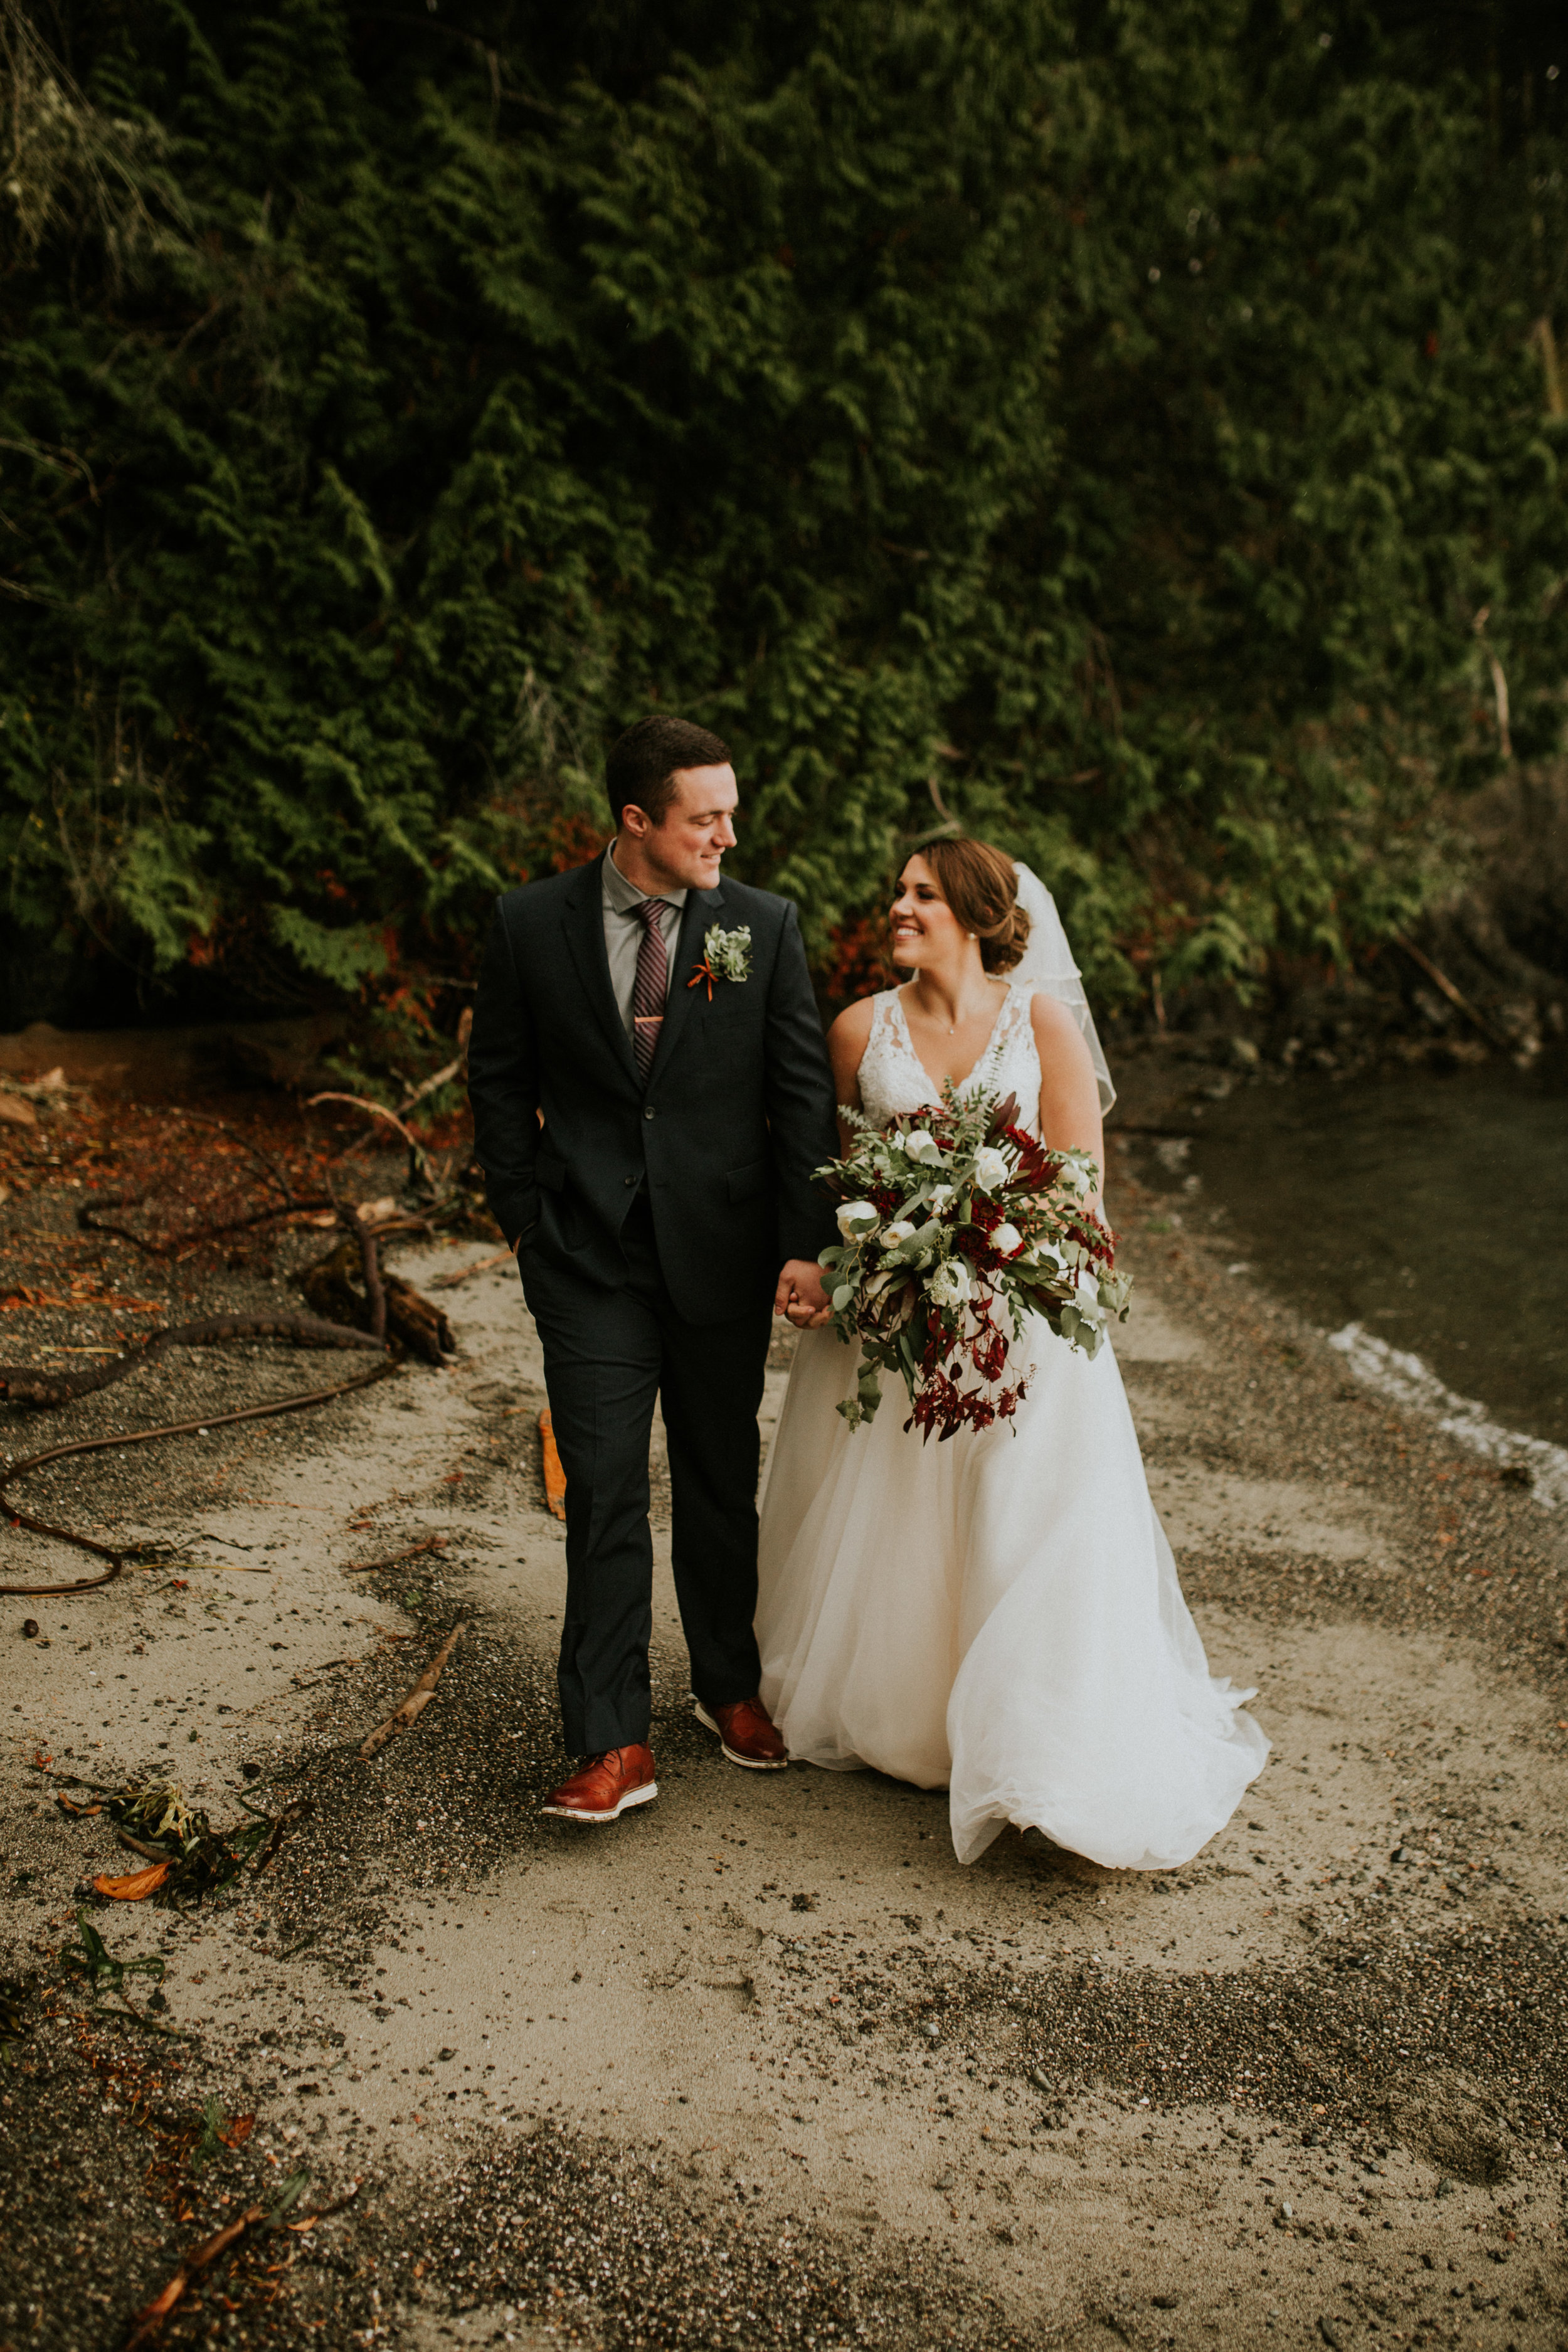 How to pick the perfect elopement dress - how to pick a dress for your elopement - what to know before picking your Elopement dress - best adventurous wedding dresses - best elopement dresses - best hiking elopement dress choices - hiking elopement dress - adventurous wedding dress - bhldn - Chantel Lauren - grace loves lace- lure bridals - flora bridal - Maggie sottero designs - galia lahav - berta - aviv wedding studio - elie Saab bridal - pallas couture